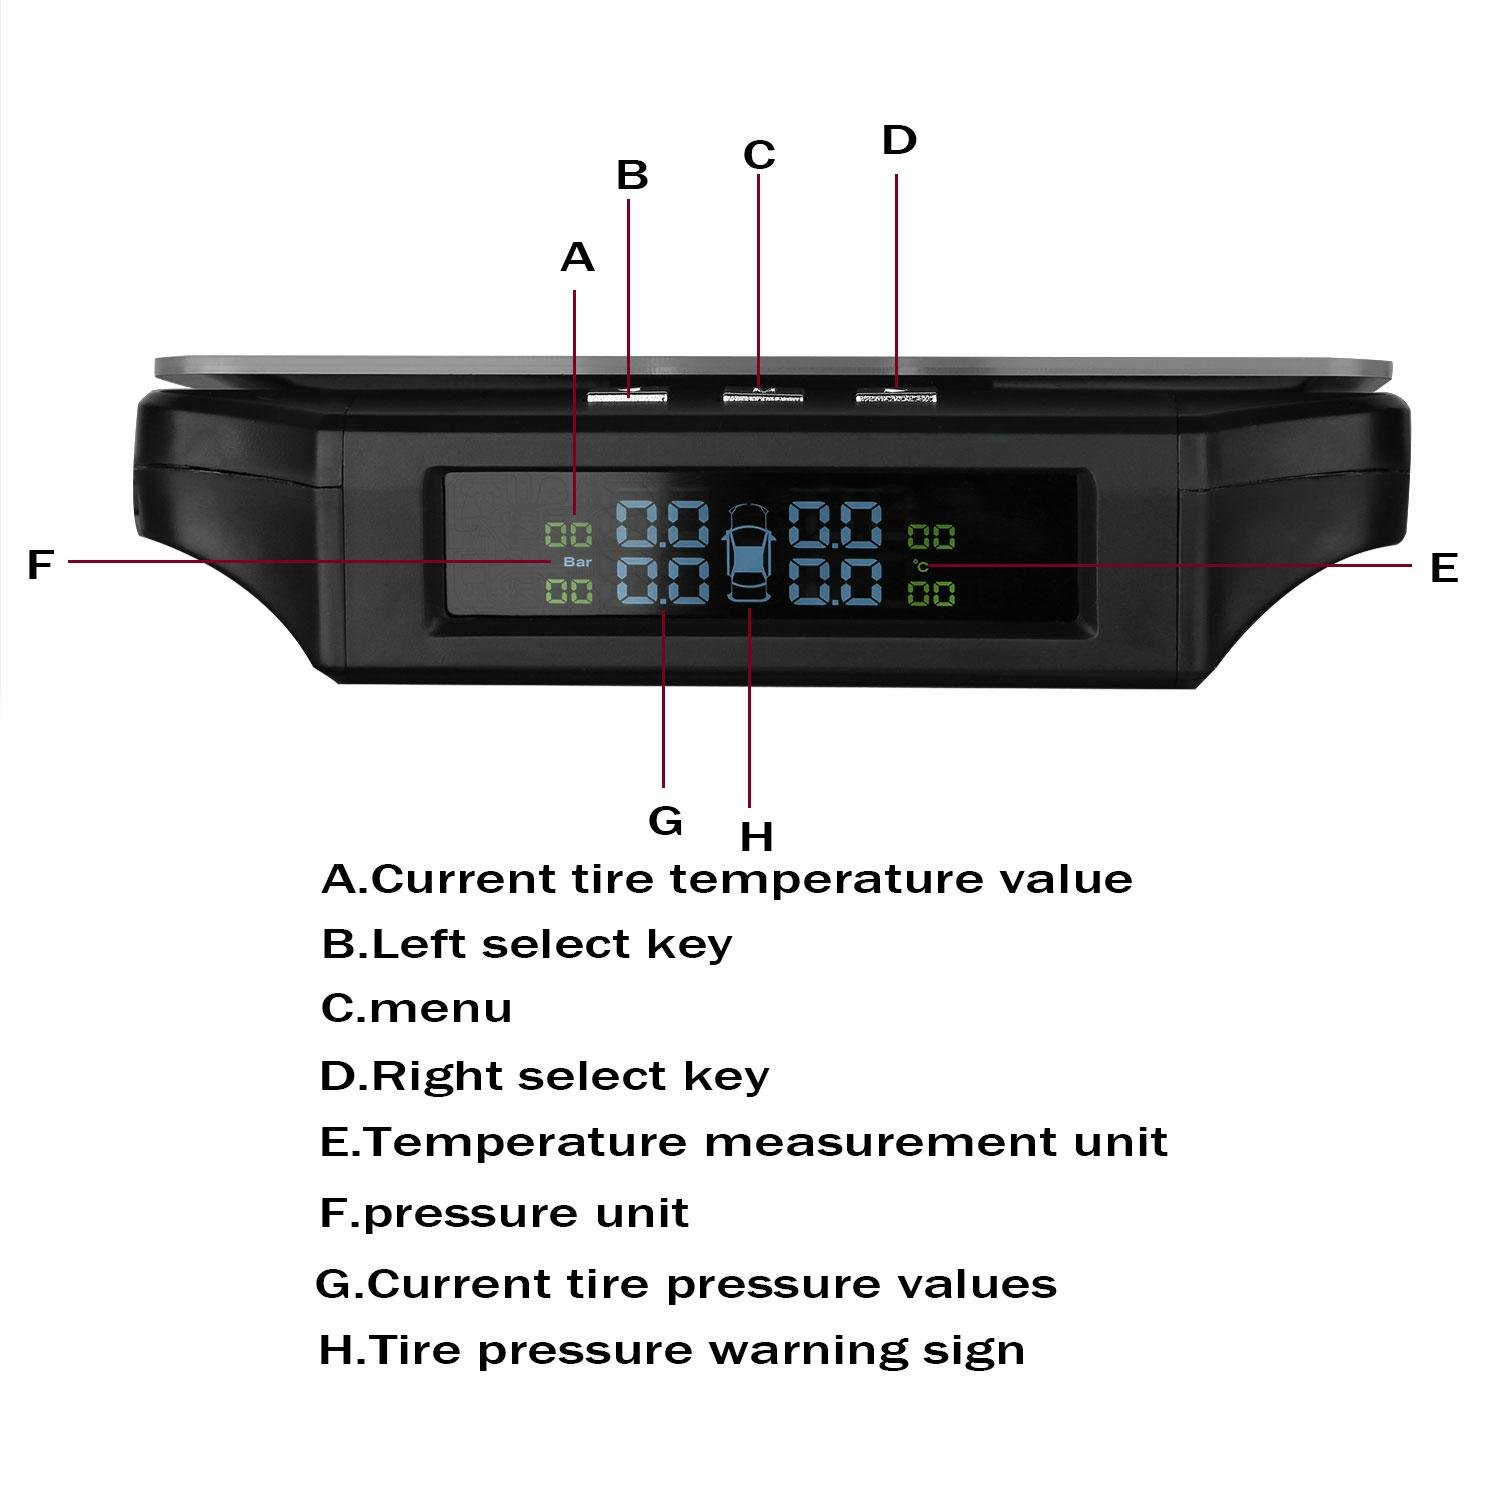 Wireless Solar Powered//USB Charging Car GPS Navigation Image Reflector Film HUD Head Up Display with TPMS Tire Pressure Monitoring System Pressure and Temperature LCD Digital Display with 4 External Sensors for Most Home Car -Black